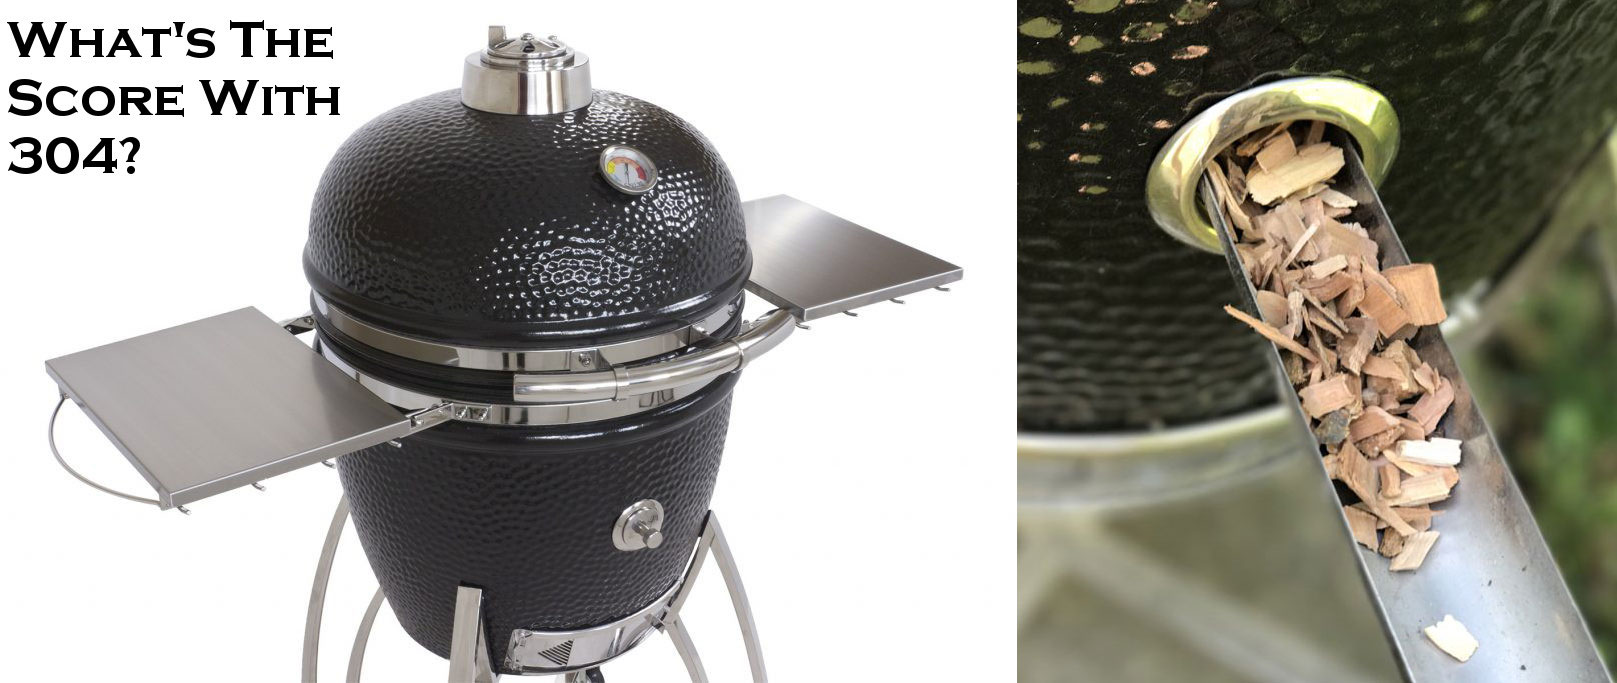 Saffire Kamado Grills with Smokin' Chip Feeder